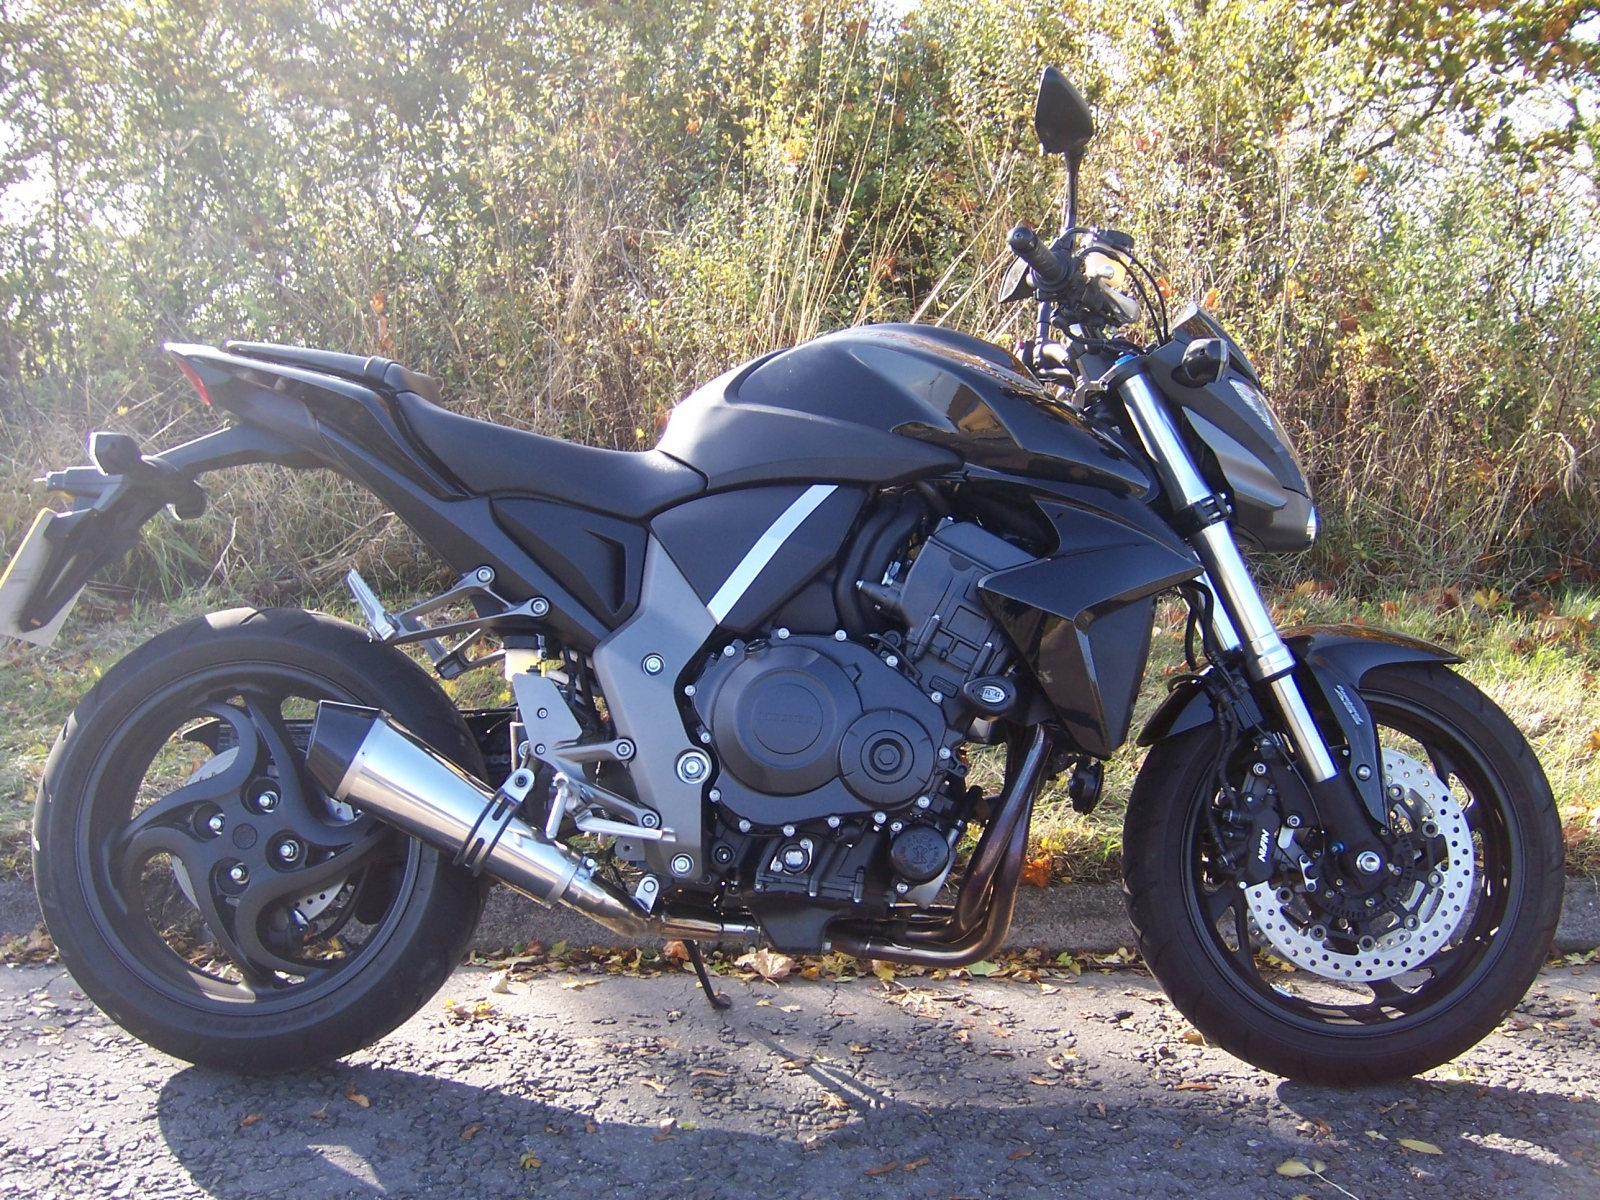 """Honda CB1000R <p>A16 Stainless Cone Exhaust with Carbon Cap Outlet<br/><br/><a href=""""https://a16roadnracesupplies.co.uk/product/a16-honda-exhausts/"""">Buy now!</a></p>"""